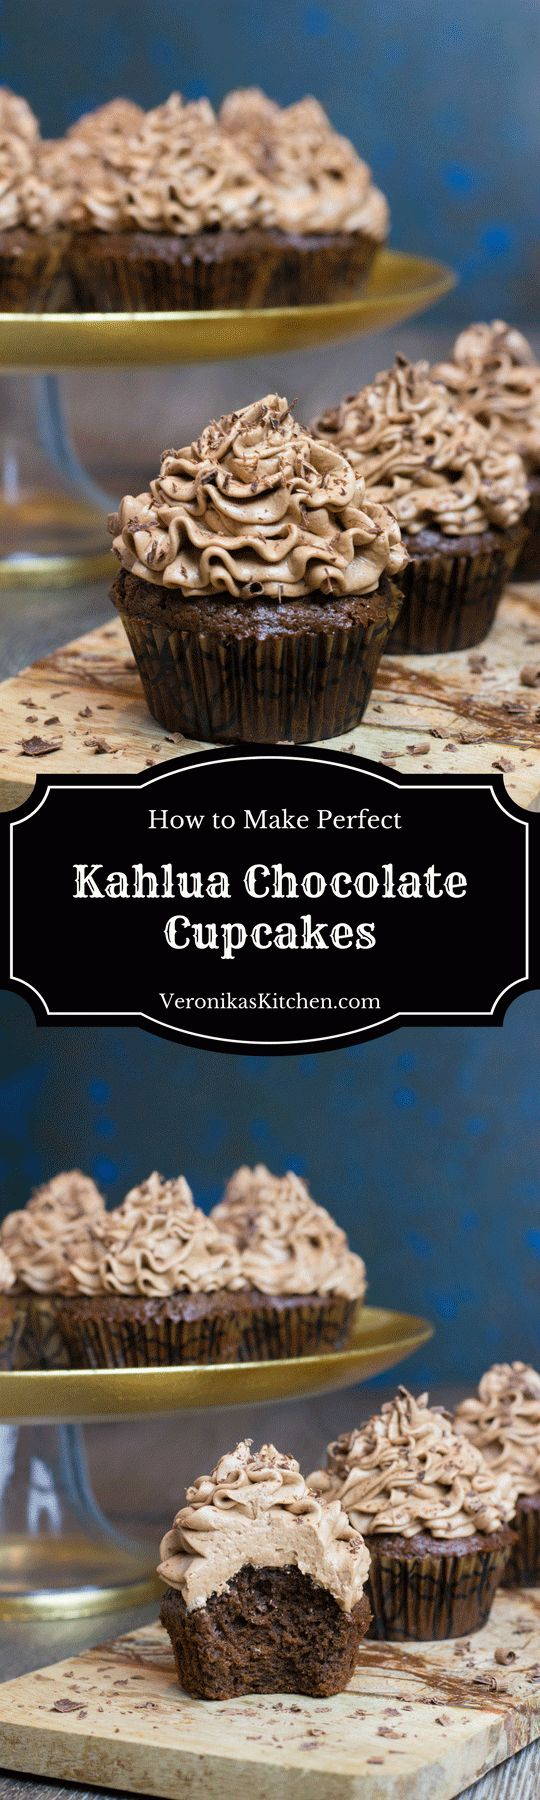 Kahlua Chocolate Cupcakes are a perfect dessert idea for chocolate and coffee lovers, featuring rich and decadent chocolate and coffee flavor with a touch of Kahlua. (cupcakes ideas, chocolate cupcakes, kahlua cupcakes, cupcake recipe ideas, cupcake ideas, chocolate desserts, desserts with chocolate, holiday dessert ideas)